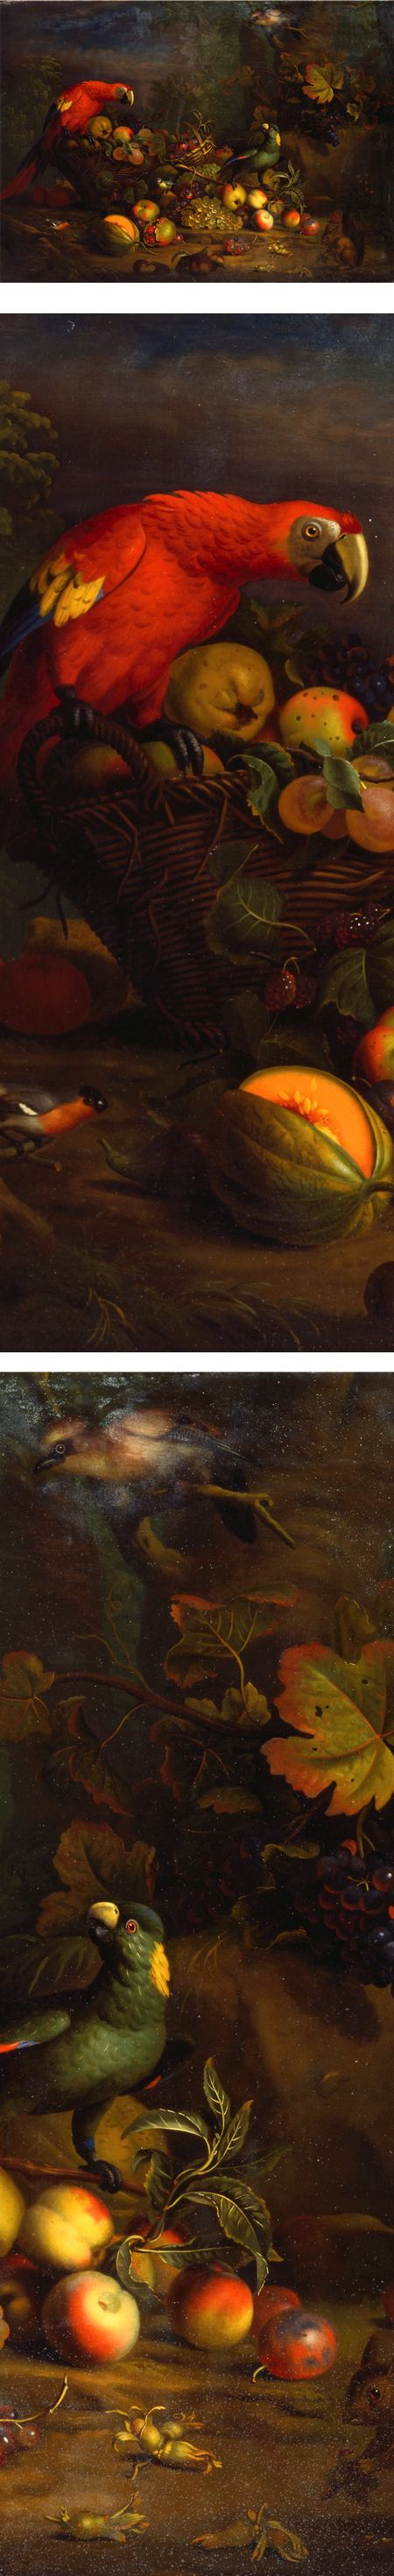 Parrots and Fruit with Other Birds and a Squirrel, Tobias Stranover